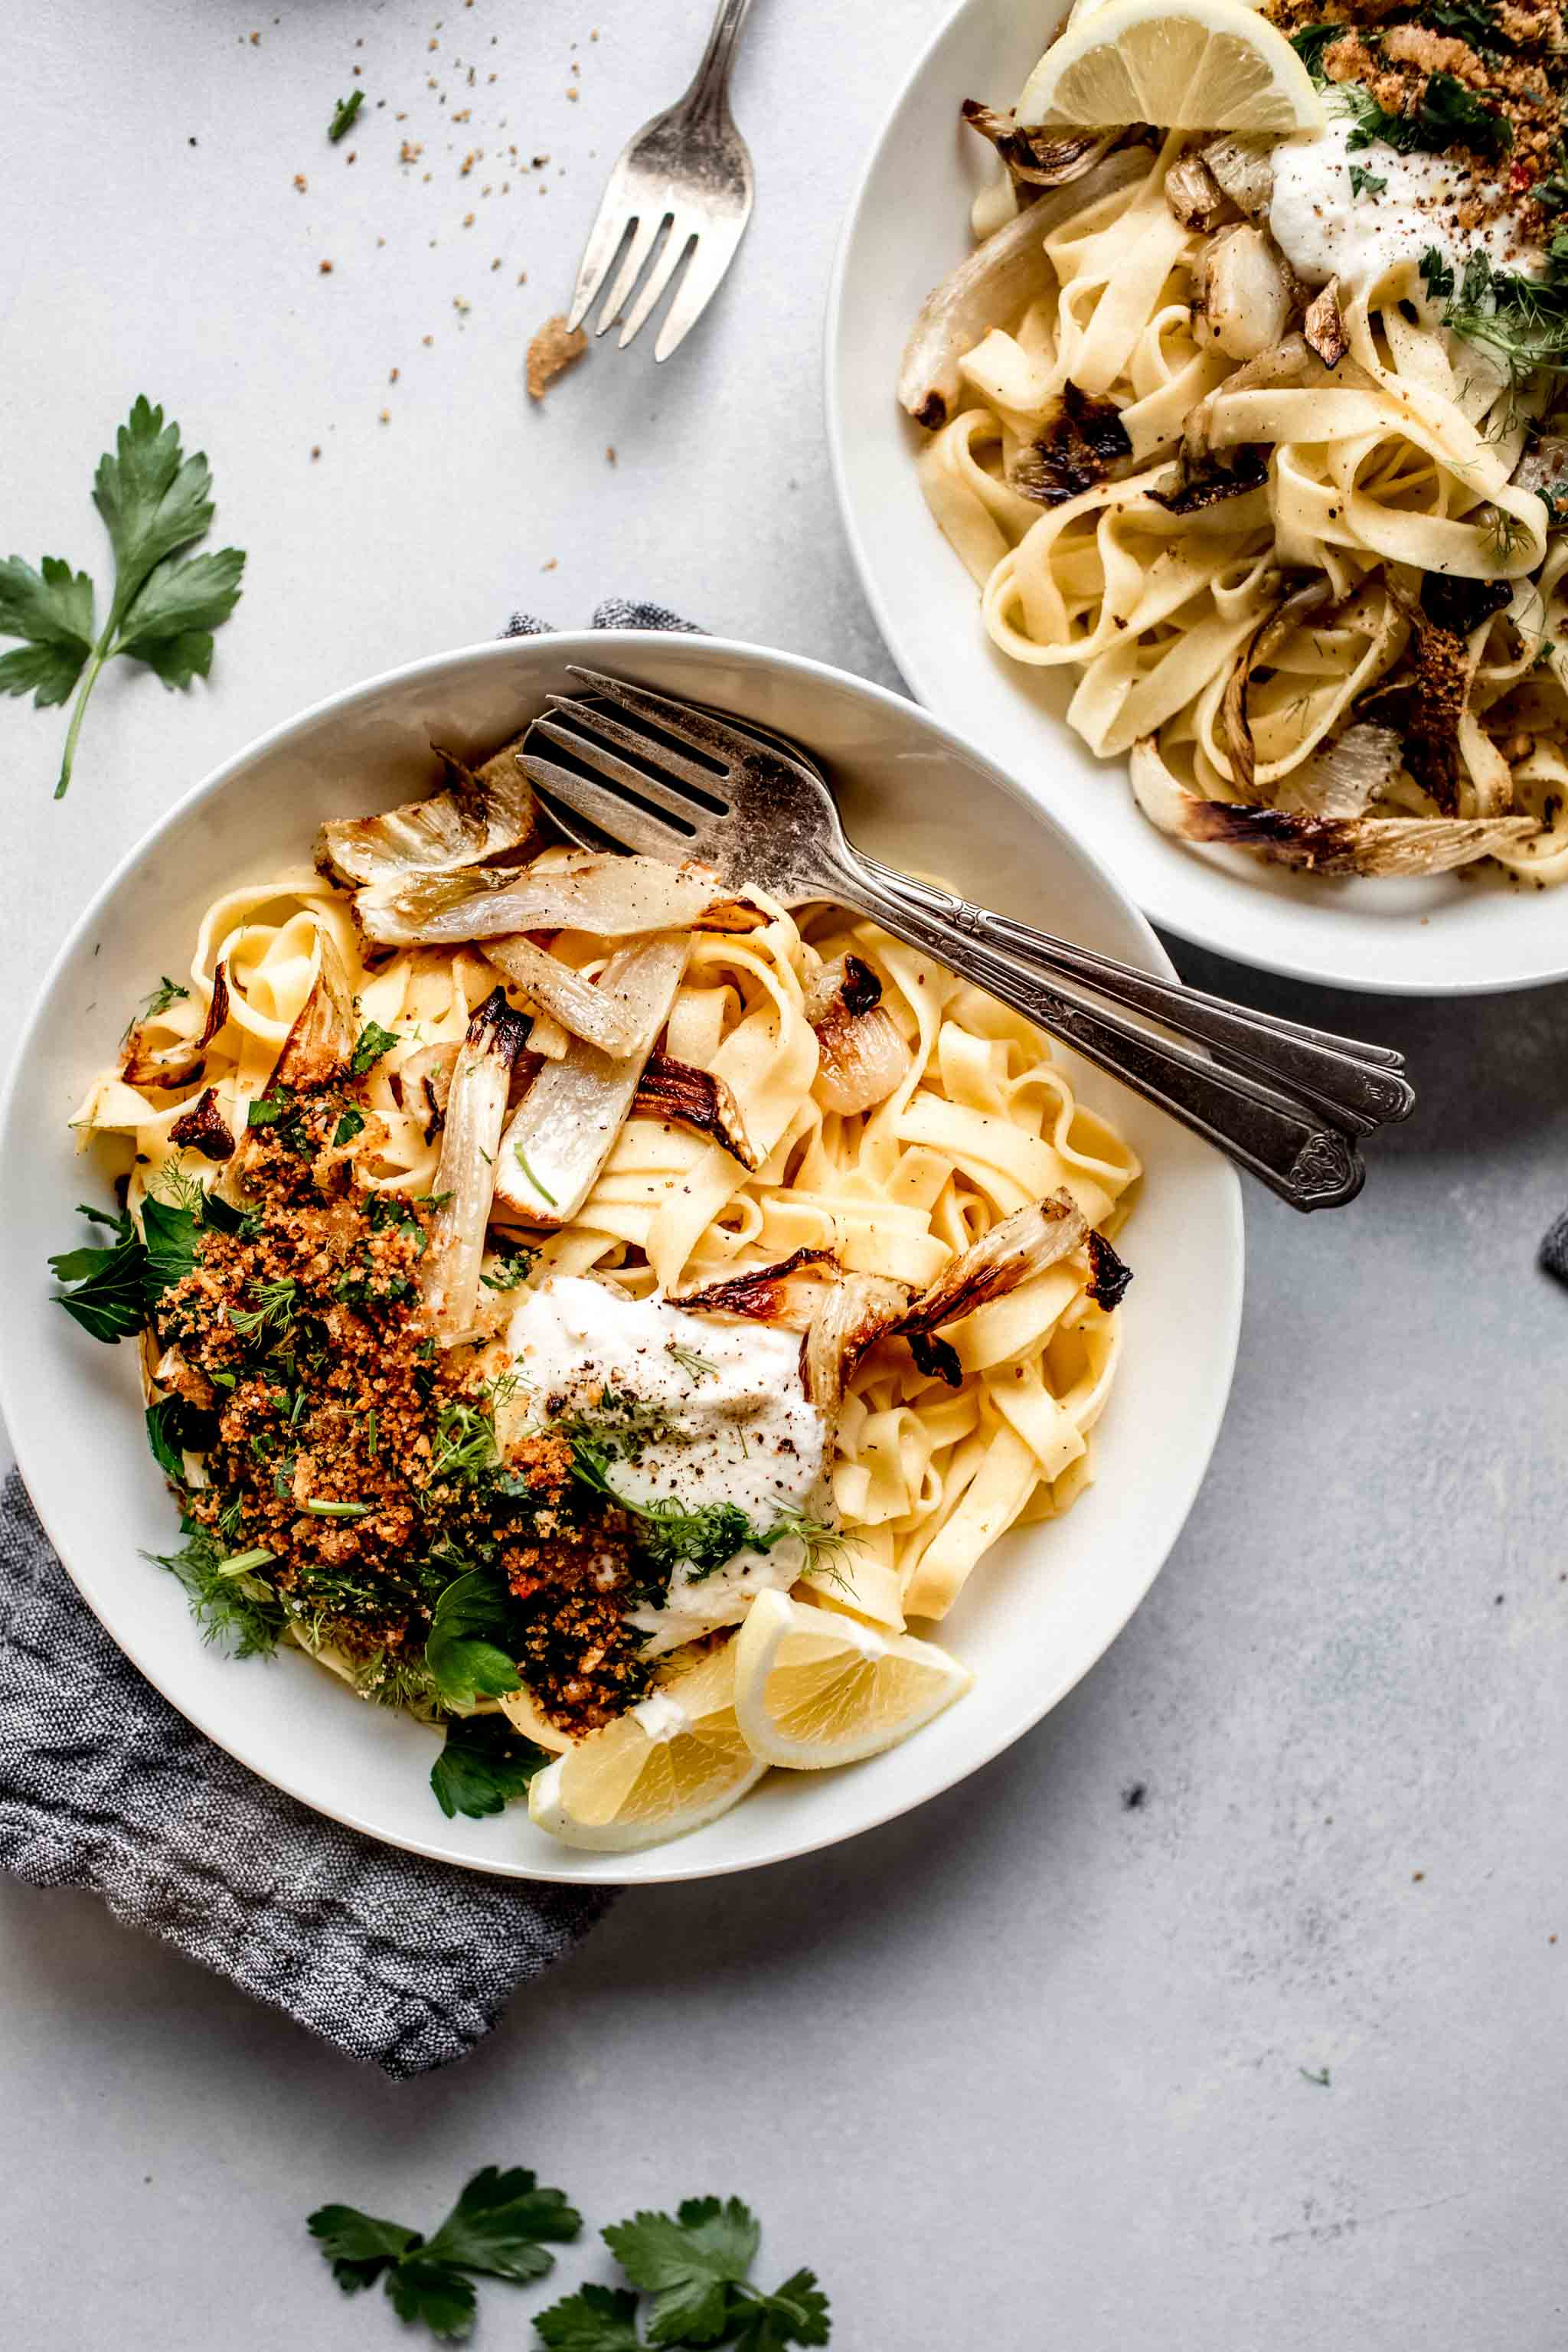 Two bowls of fennel pasta.